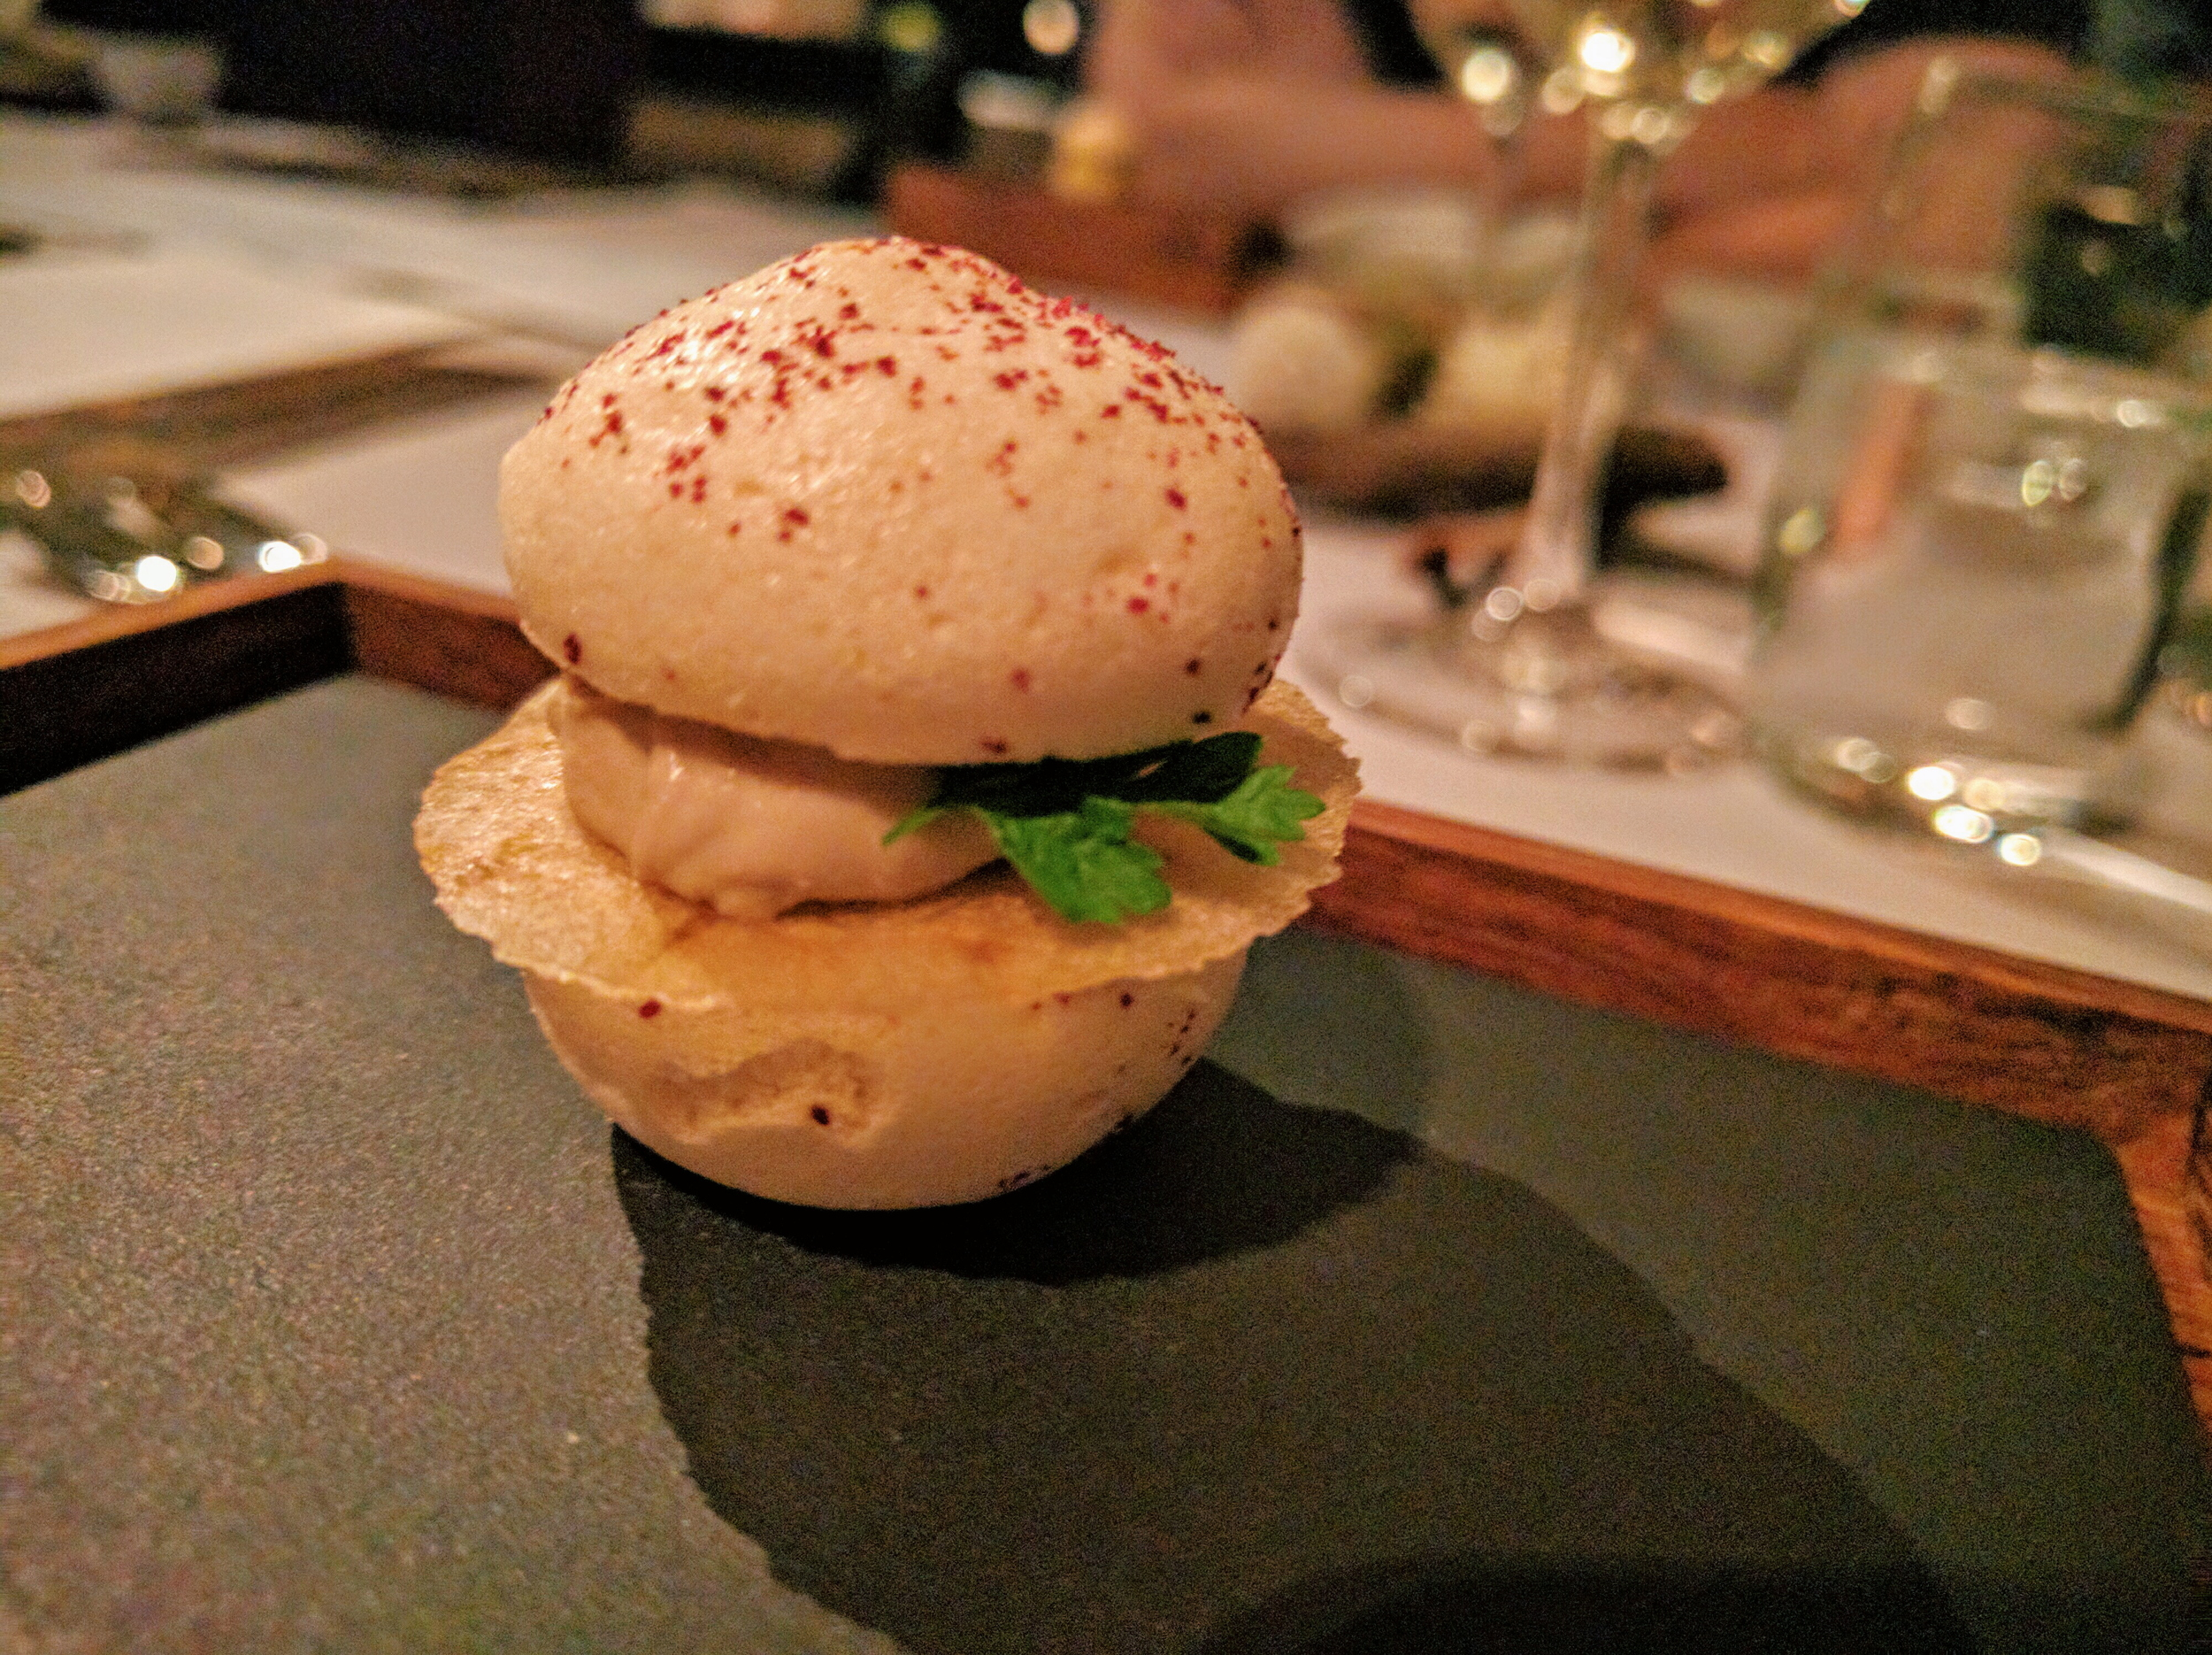 Apple & Lingonberry macaron with foie gras and chervil